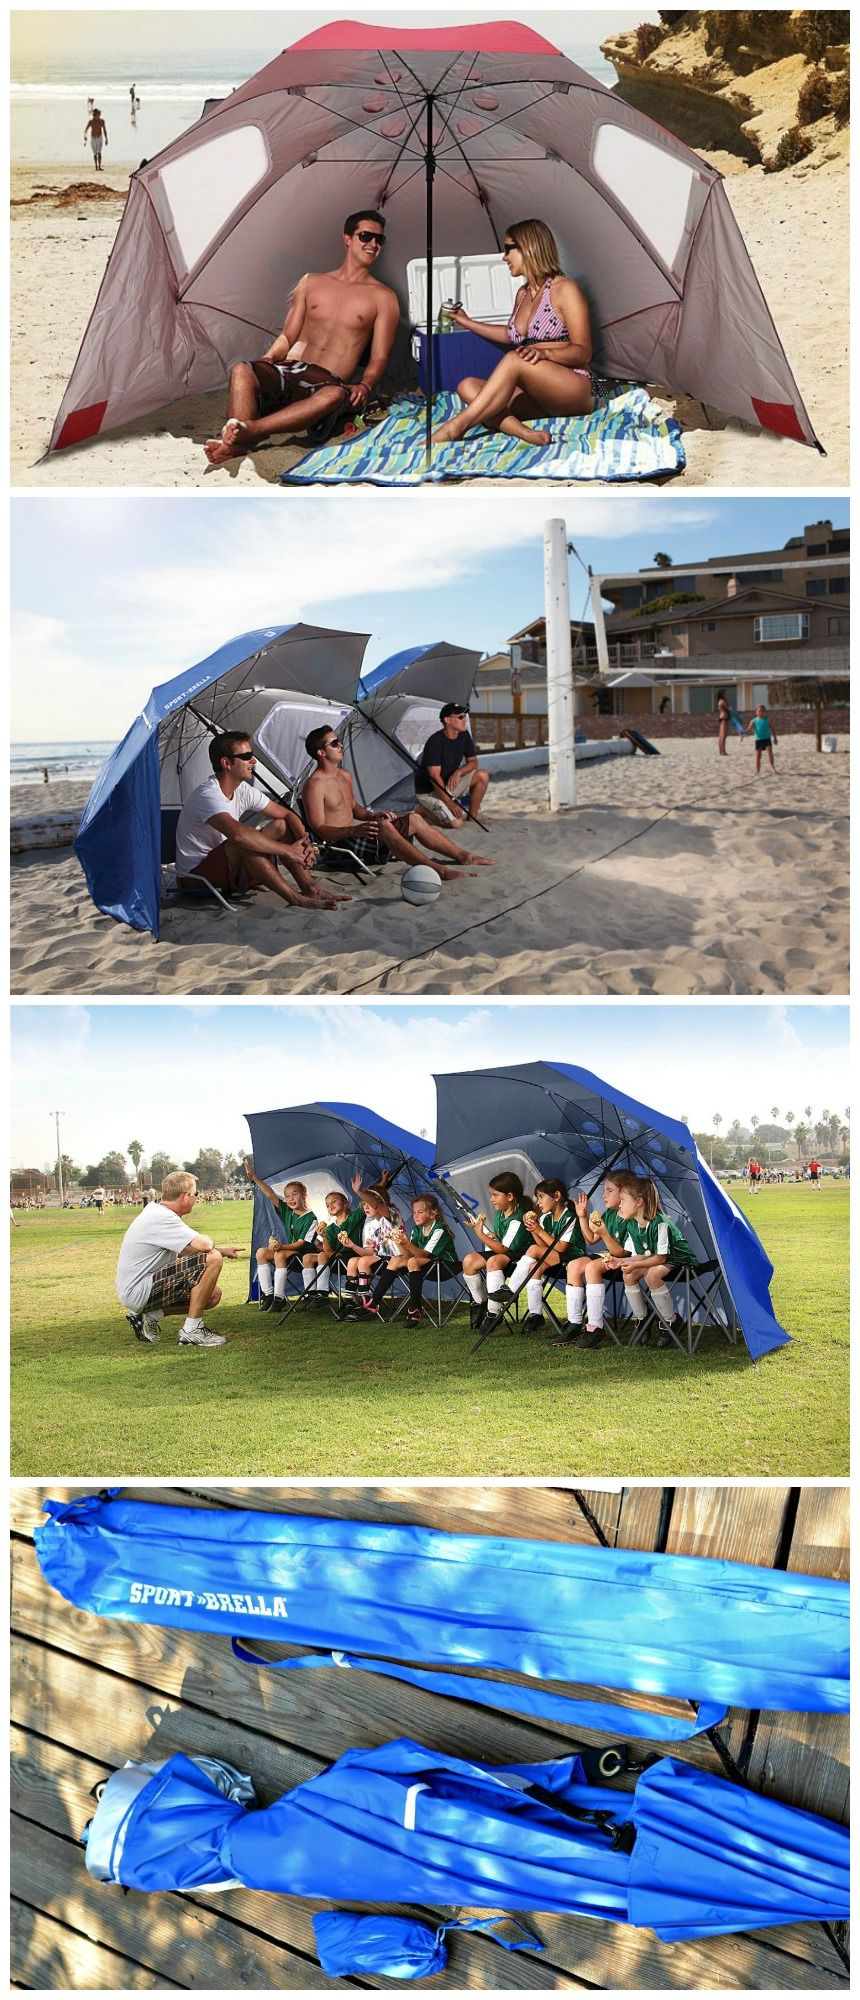 A beach umbrella sun tent rain shelter and more all in one & Portable Sun and Weather Shelter for Rain or Shine | Rain shelter ...